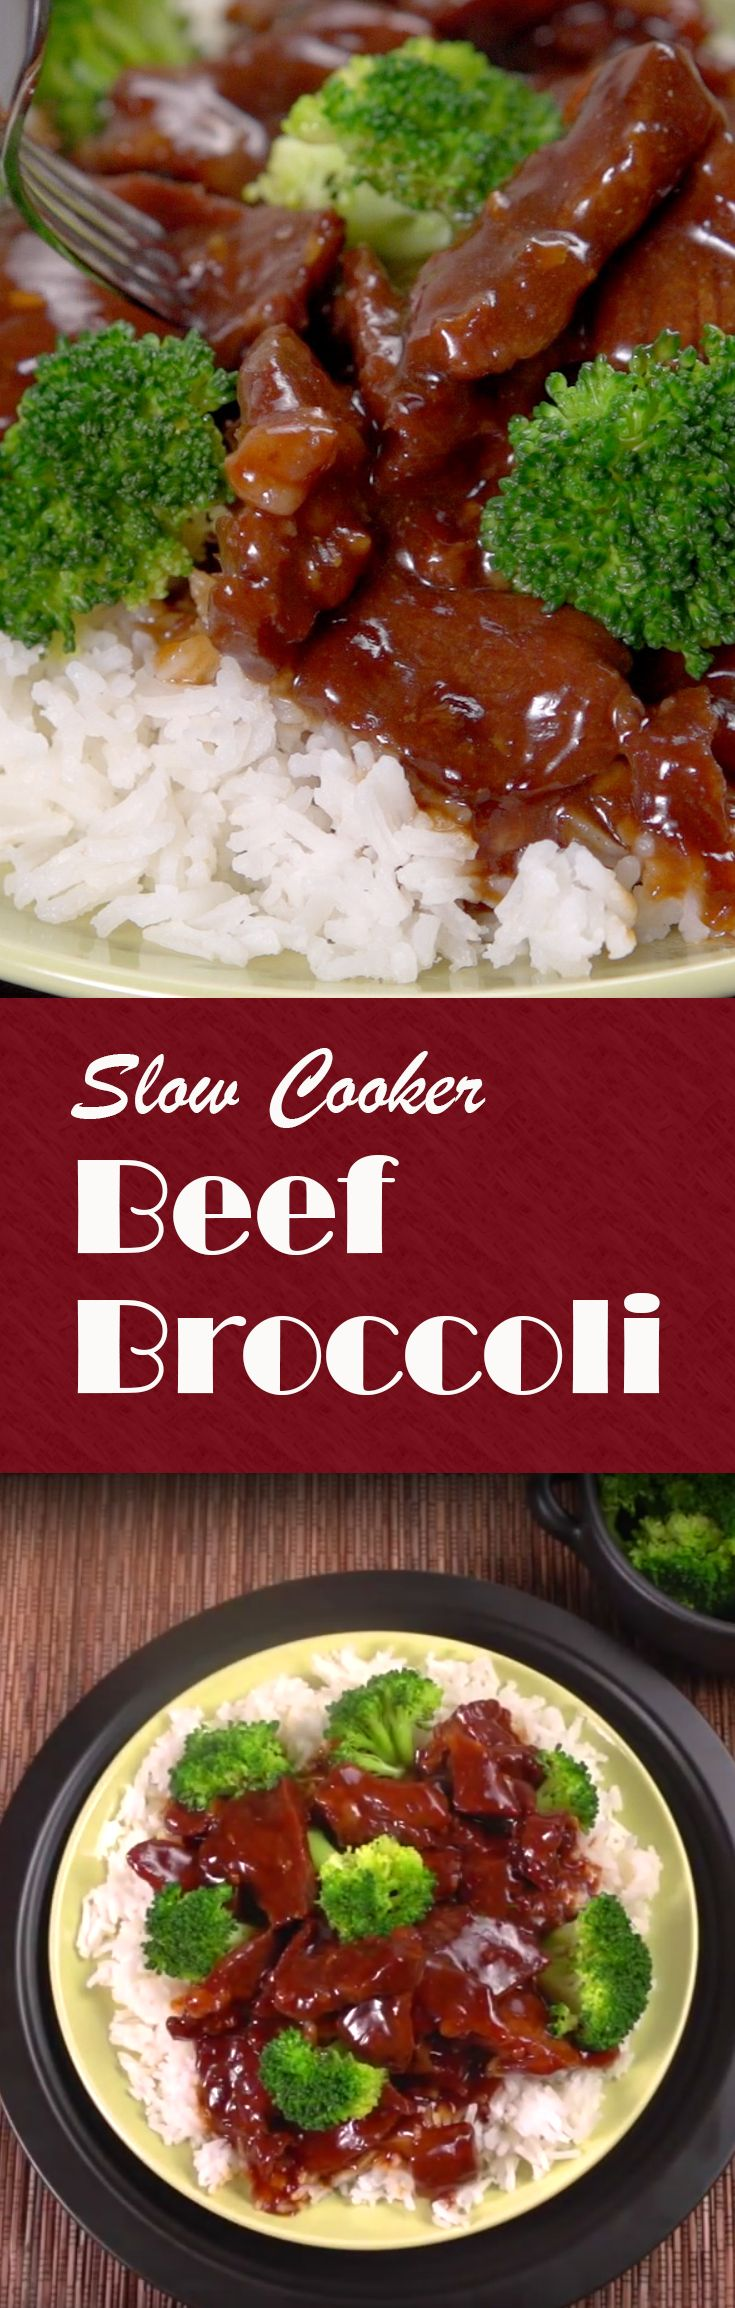 Slow Cooker Beef Broccoli Recipe | Here's a great meal that'll satisfy your hunger! With just ten minute of prep time and 5 hours in the crockpot it's a easy dinner to pull together. You'll need beef chuck roast, beef broth, sesame oil, garlic, chili flakes, soy sauce, brown sugar, cornstarch, broccoli florets and white rice to complete it. Click for the how-to video and complete recipe. #familydinner #easymeals #crockpotcooking #homecooking